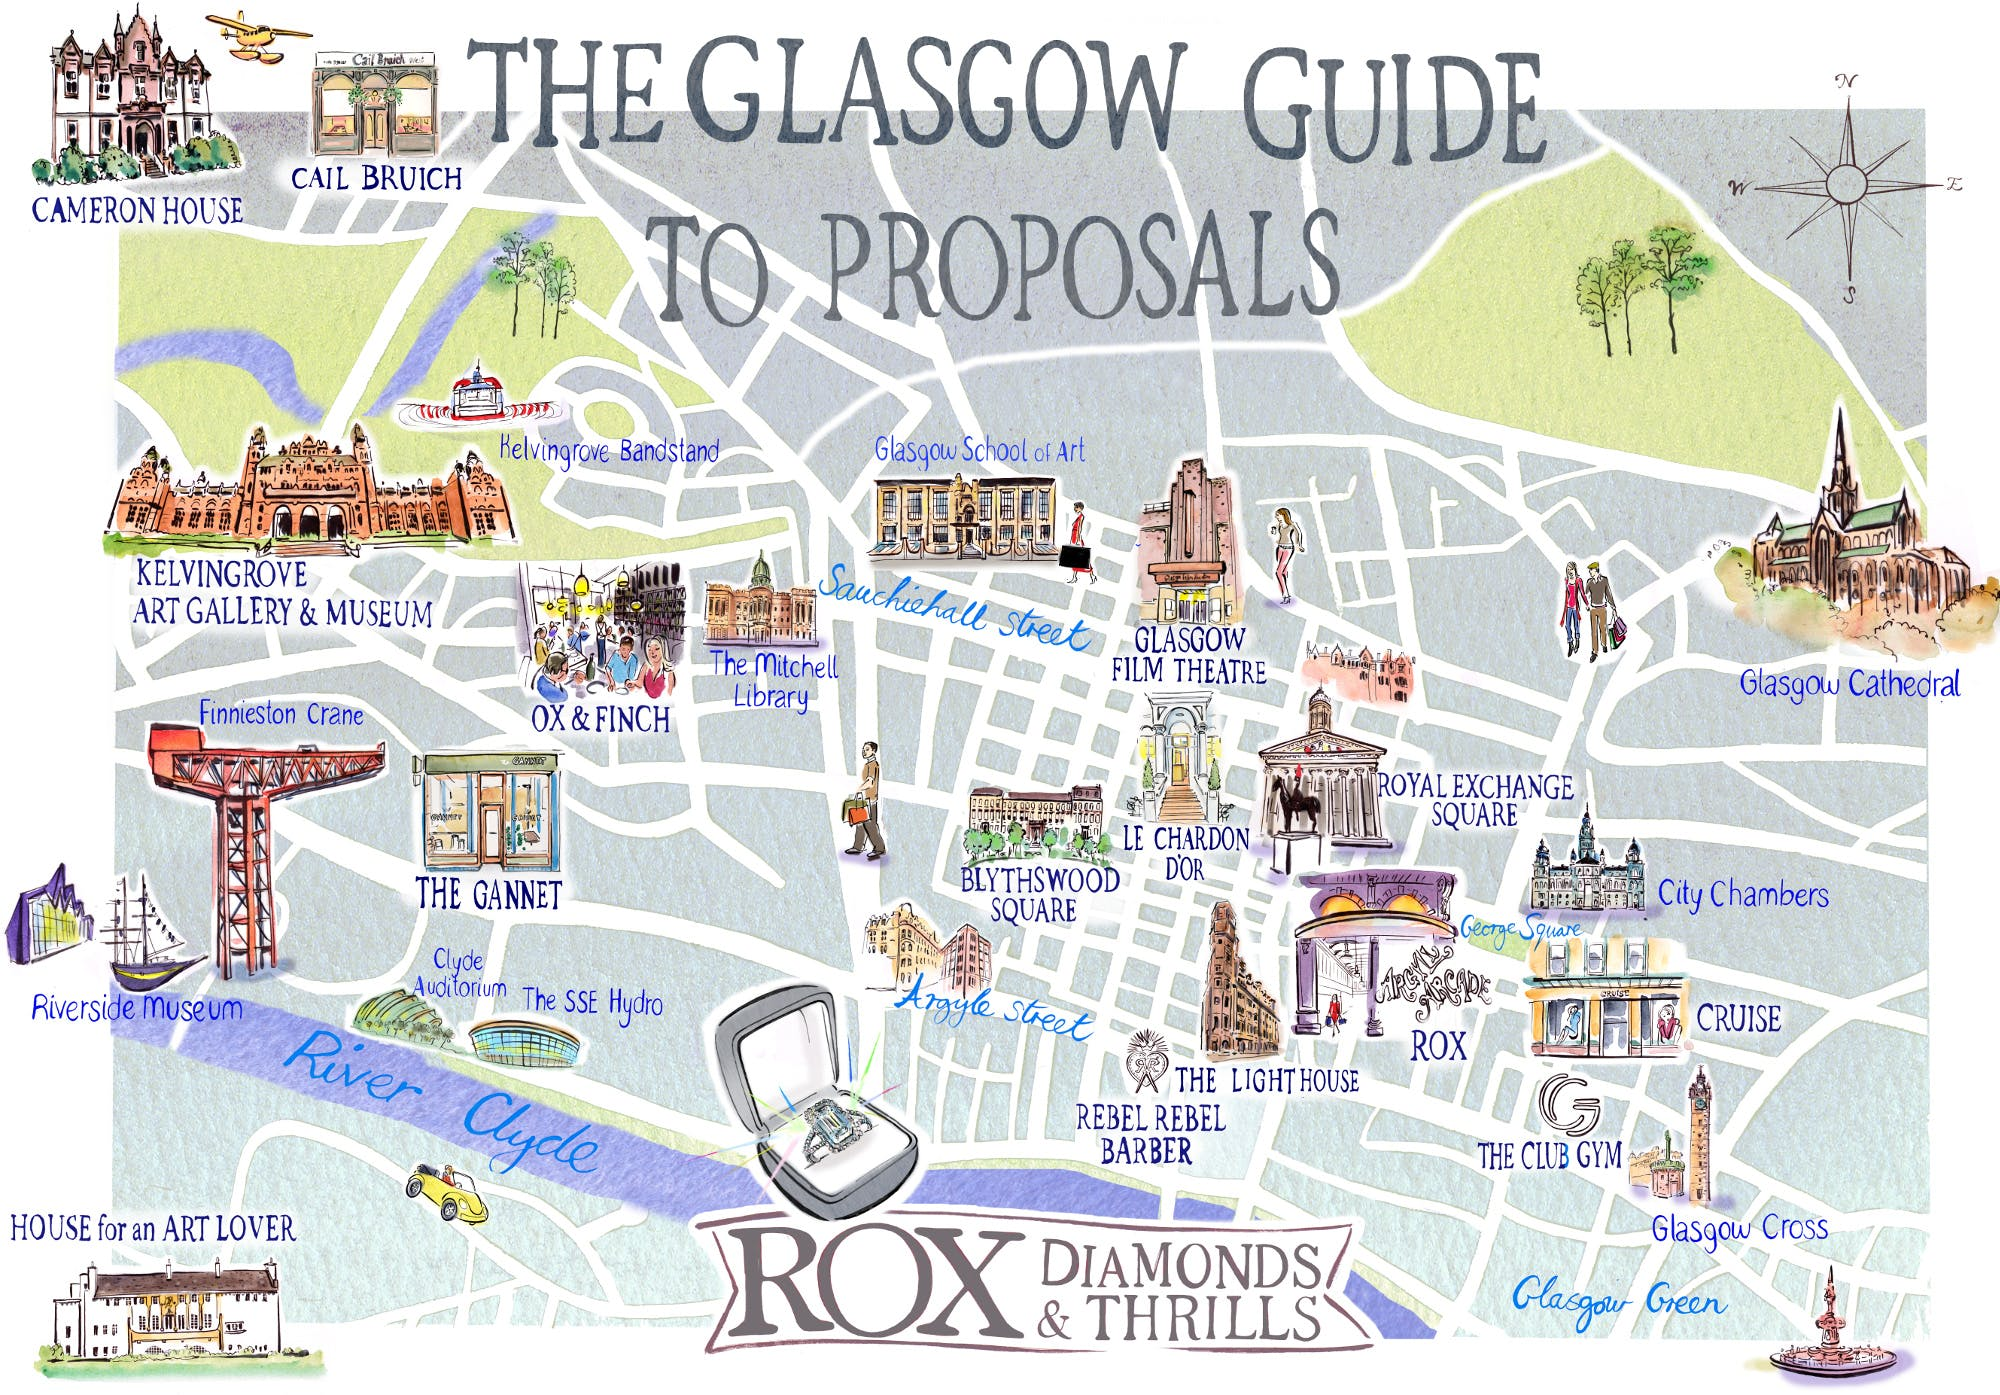 Glasgow Guide to Wedding Proposals